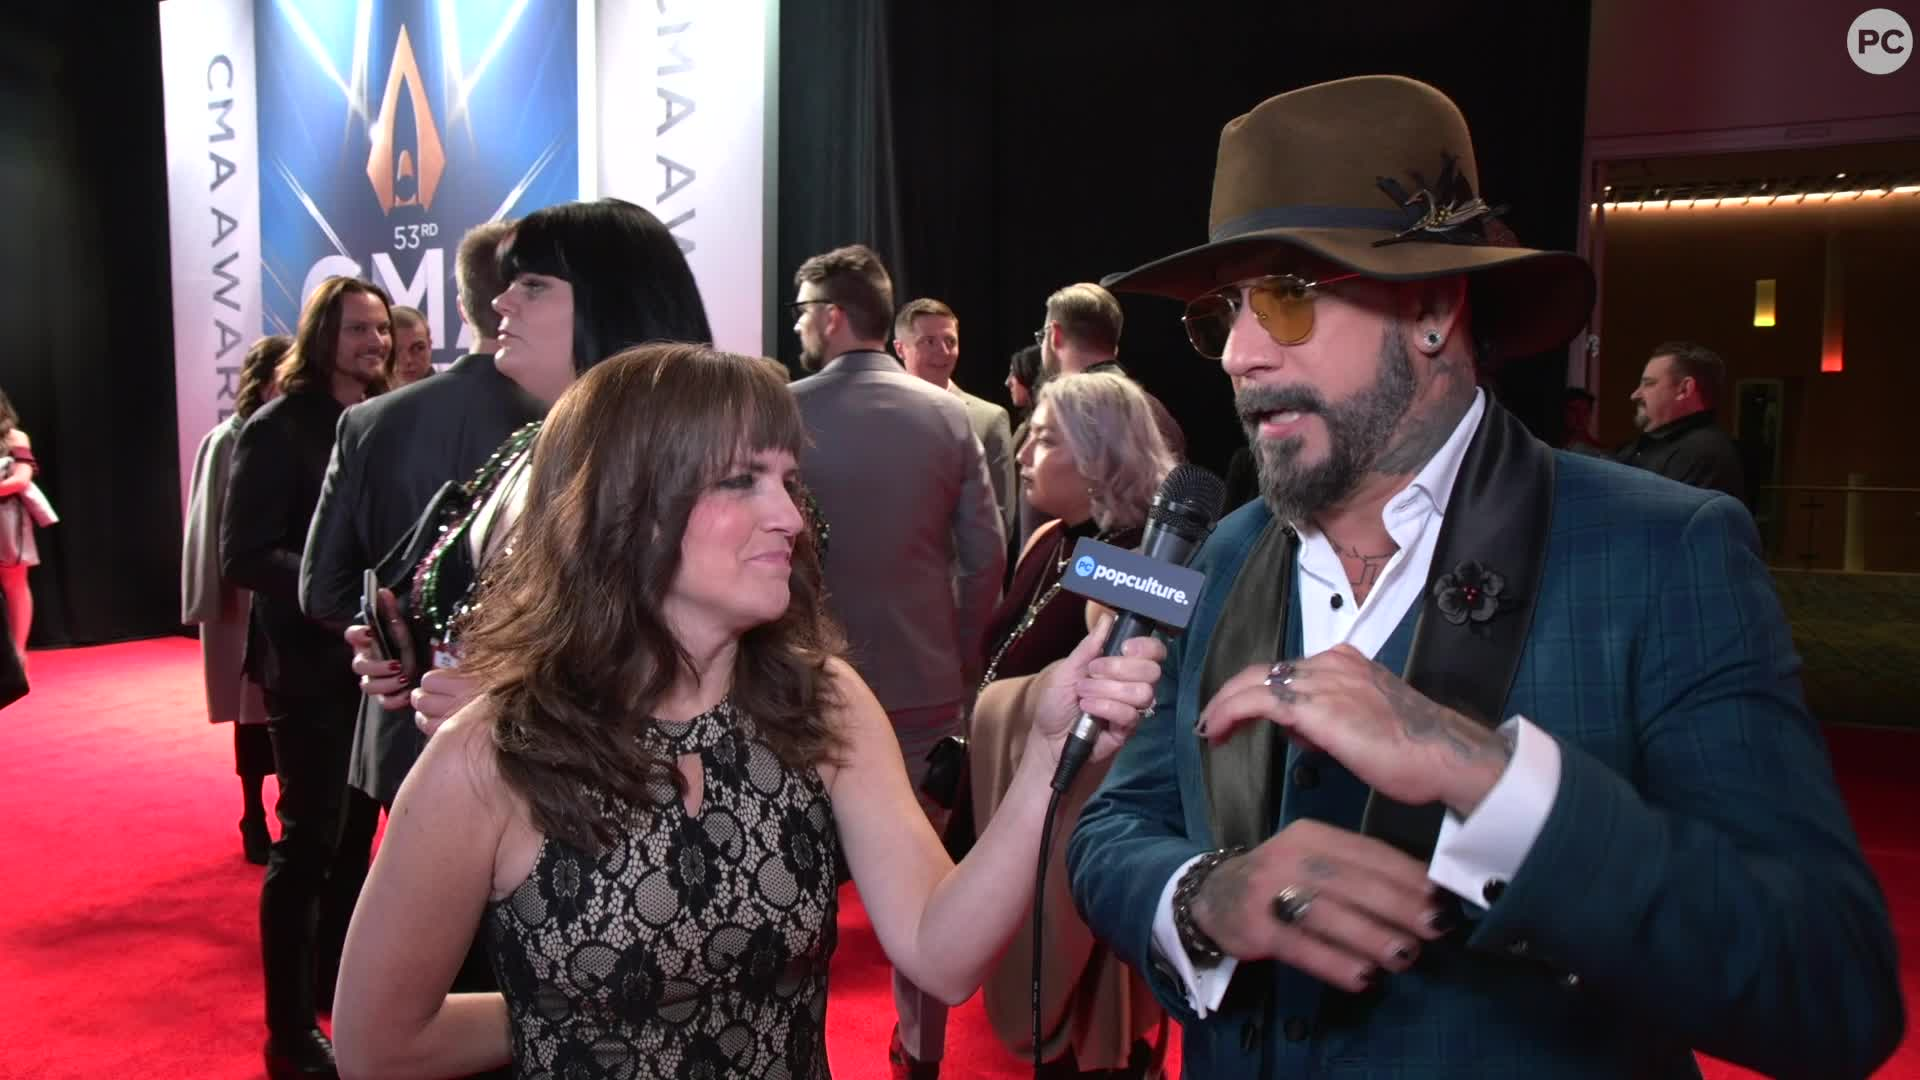 AJ McLean - 2019 CMA Awards screen capture